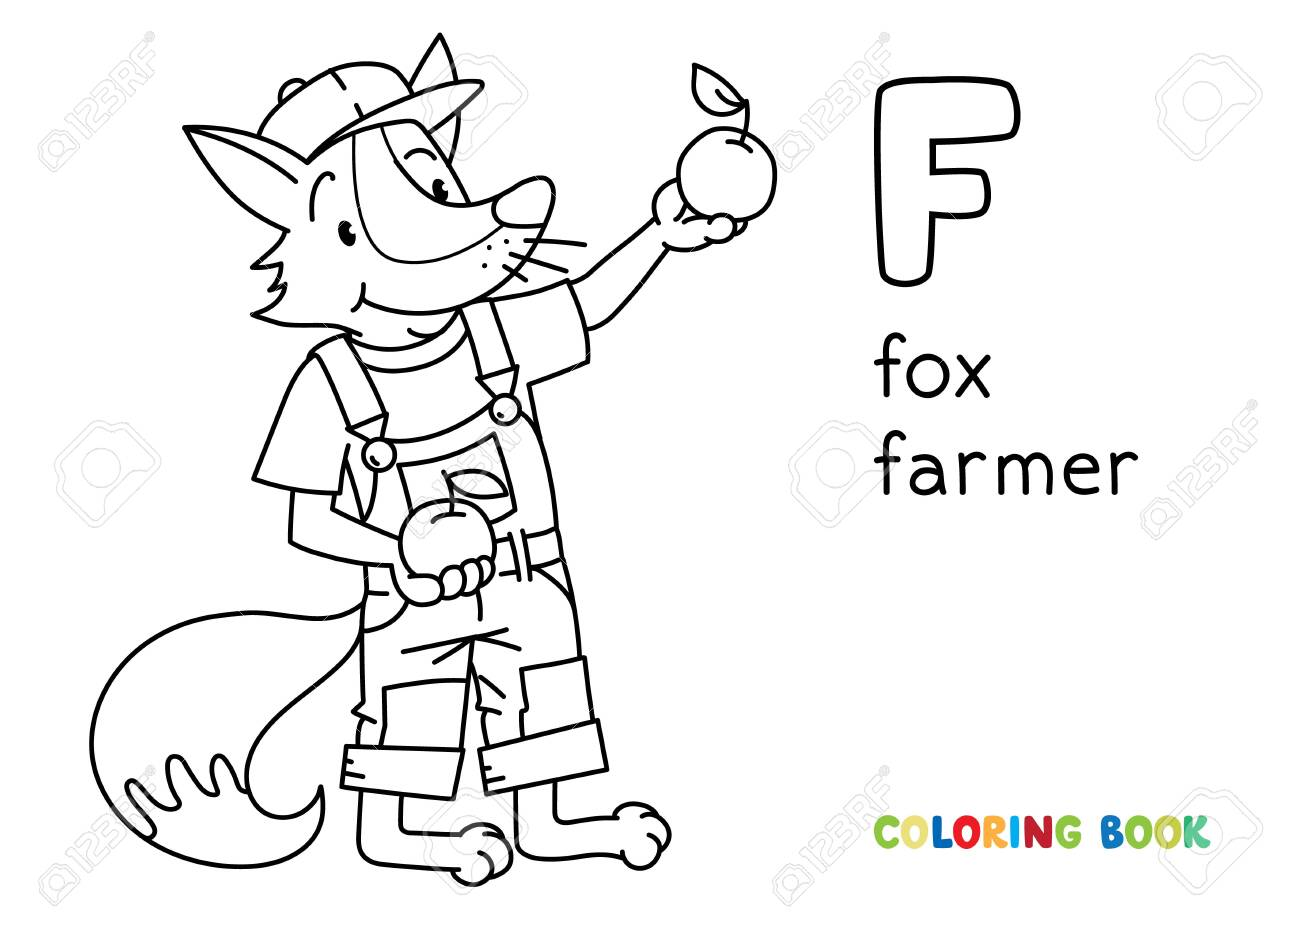 Fox Farmer Abc Coloring Book Alphabet F Royalty Free Cliparts Vectors And Stock Illustration Image 142930232